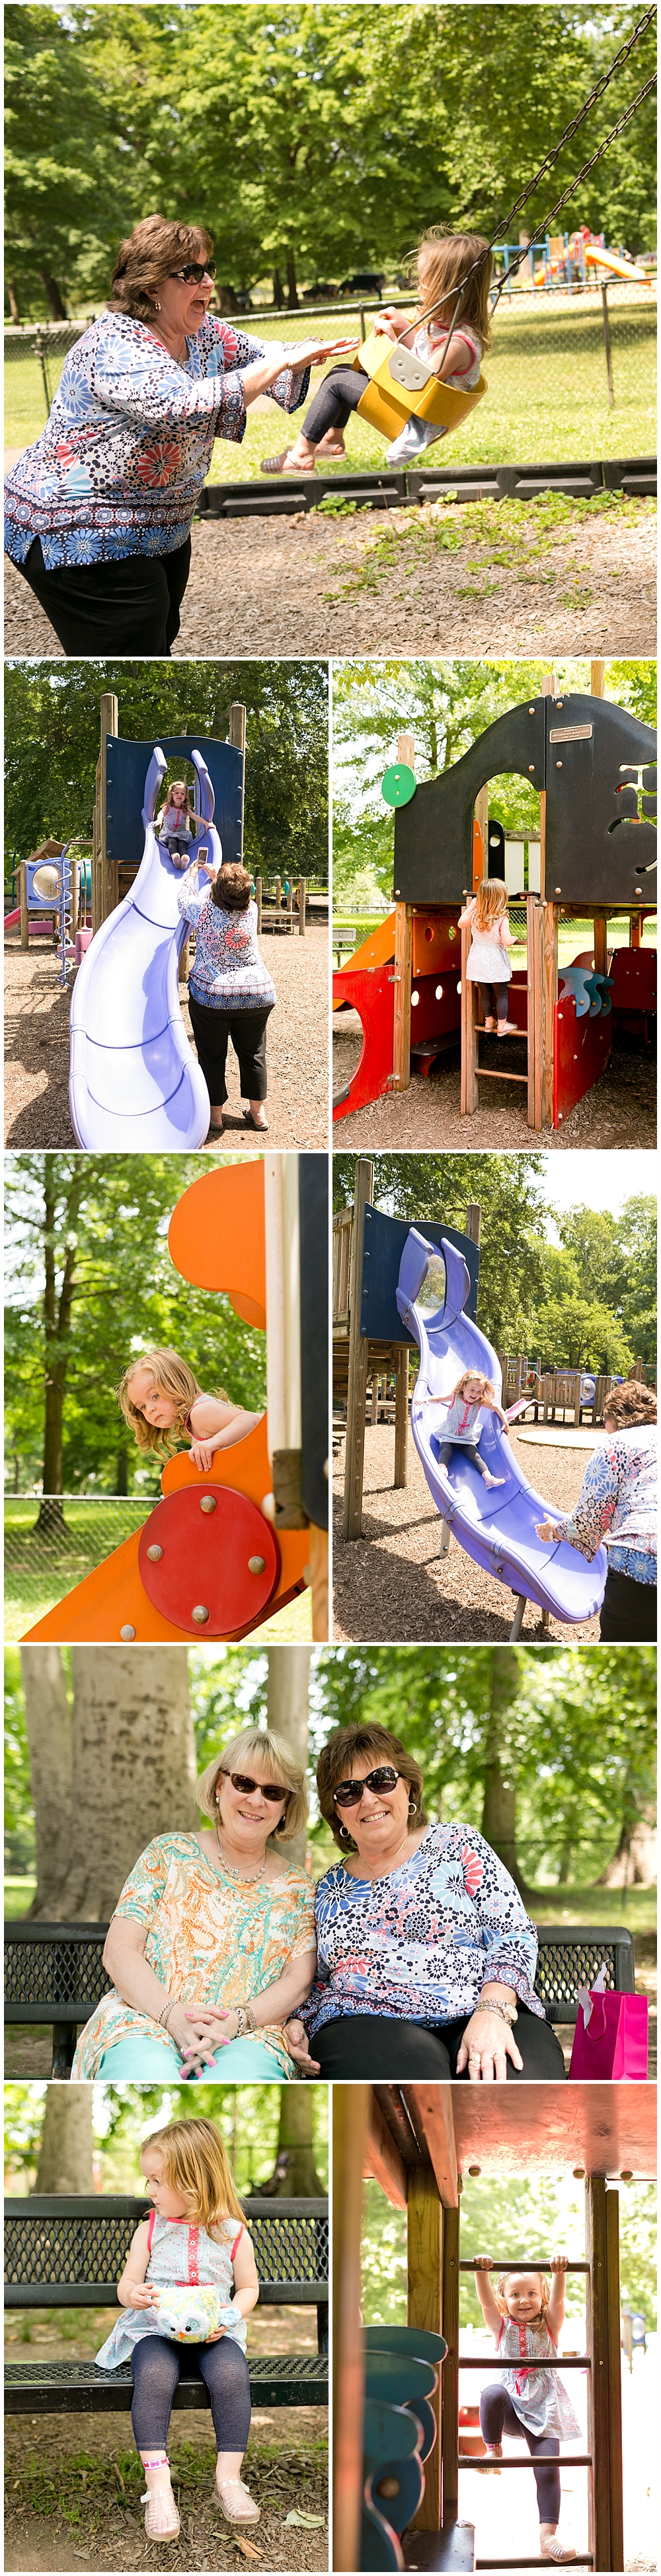 two-year-old girl with grandmother at Central Park in Ashland, Kentucky